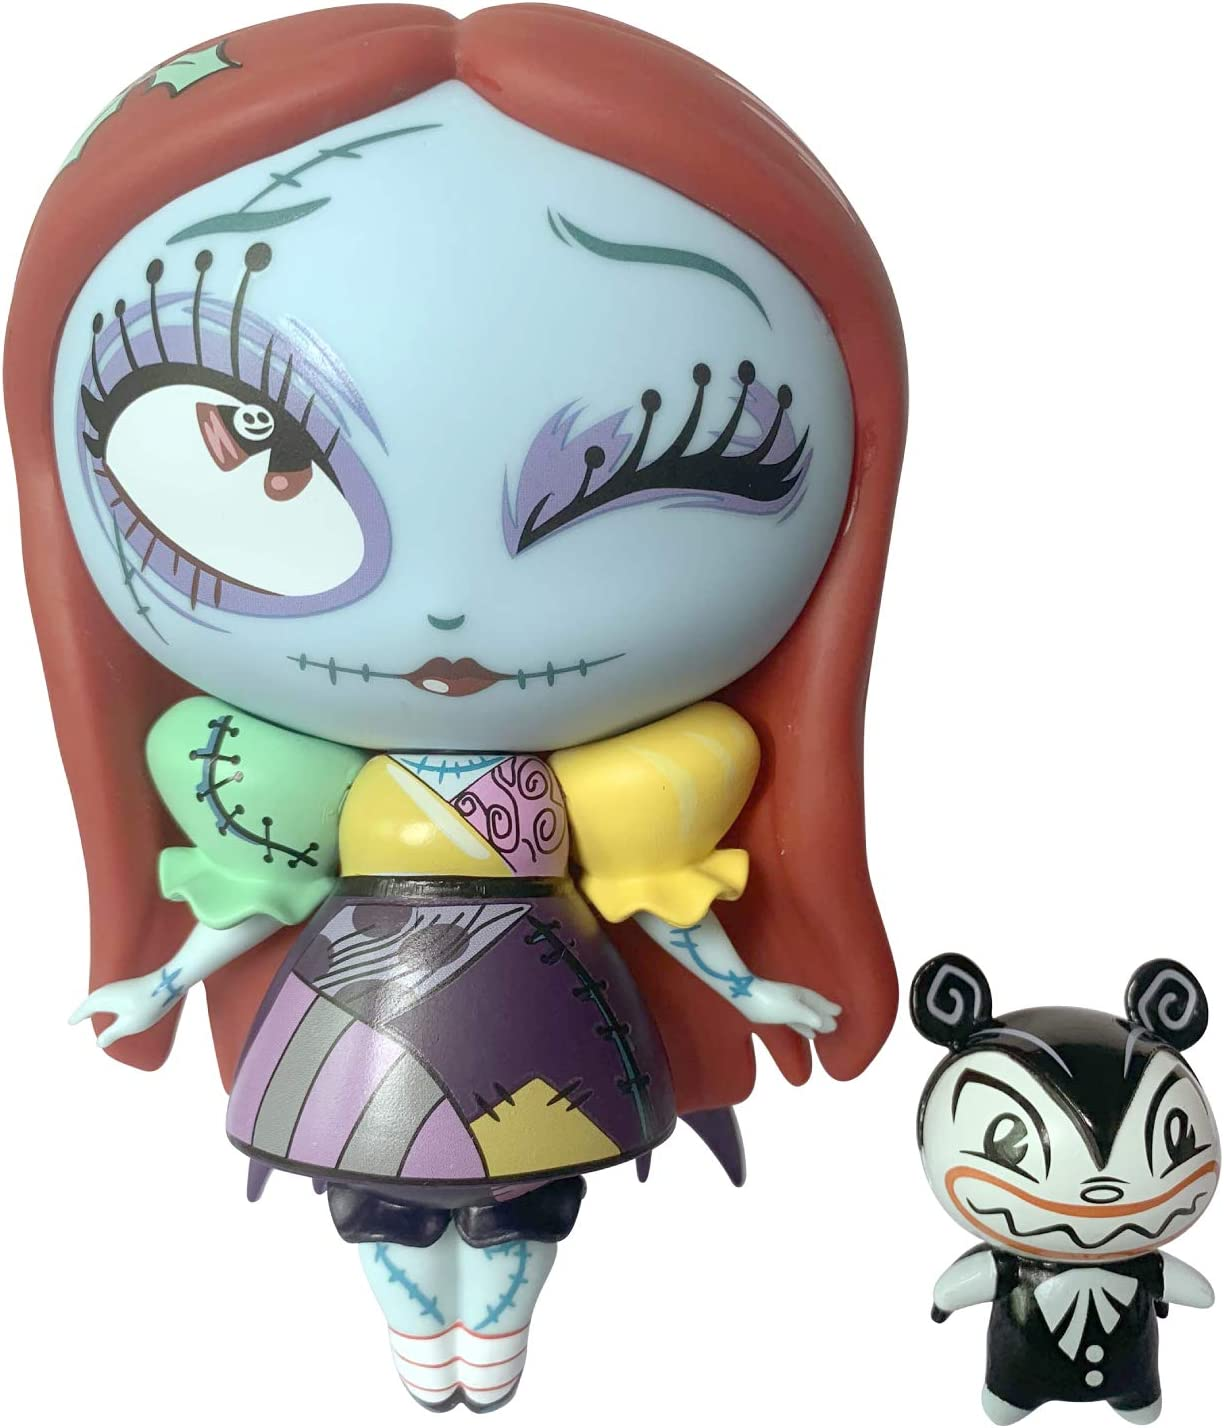 Enesco World of Miss Mindy Nightmare Before Christmas Sally Special Holiday Edition Vinyl Figurine, 7.09 Inch, Multicolor